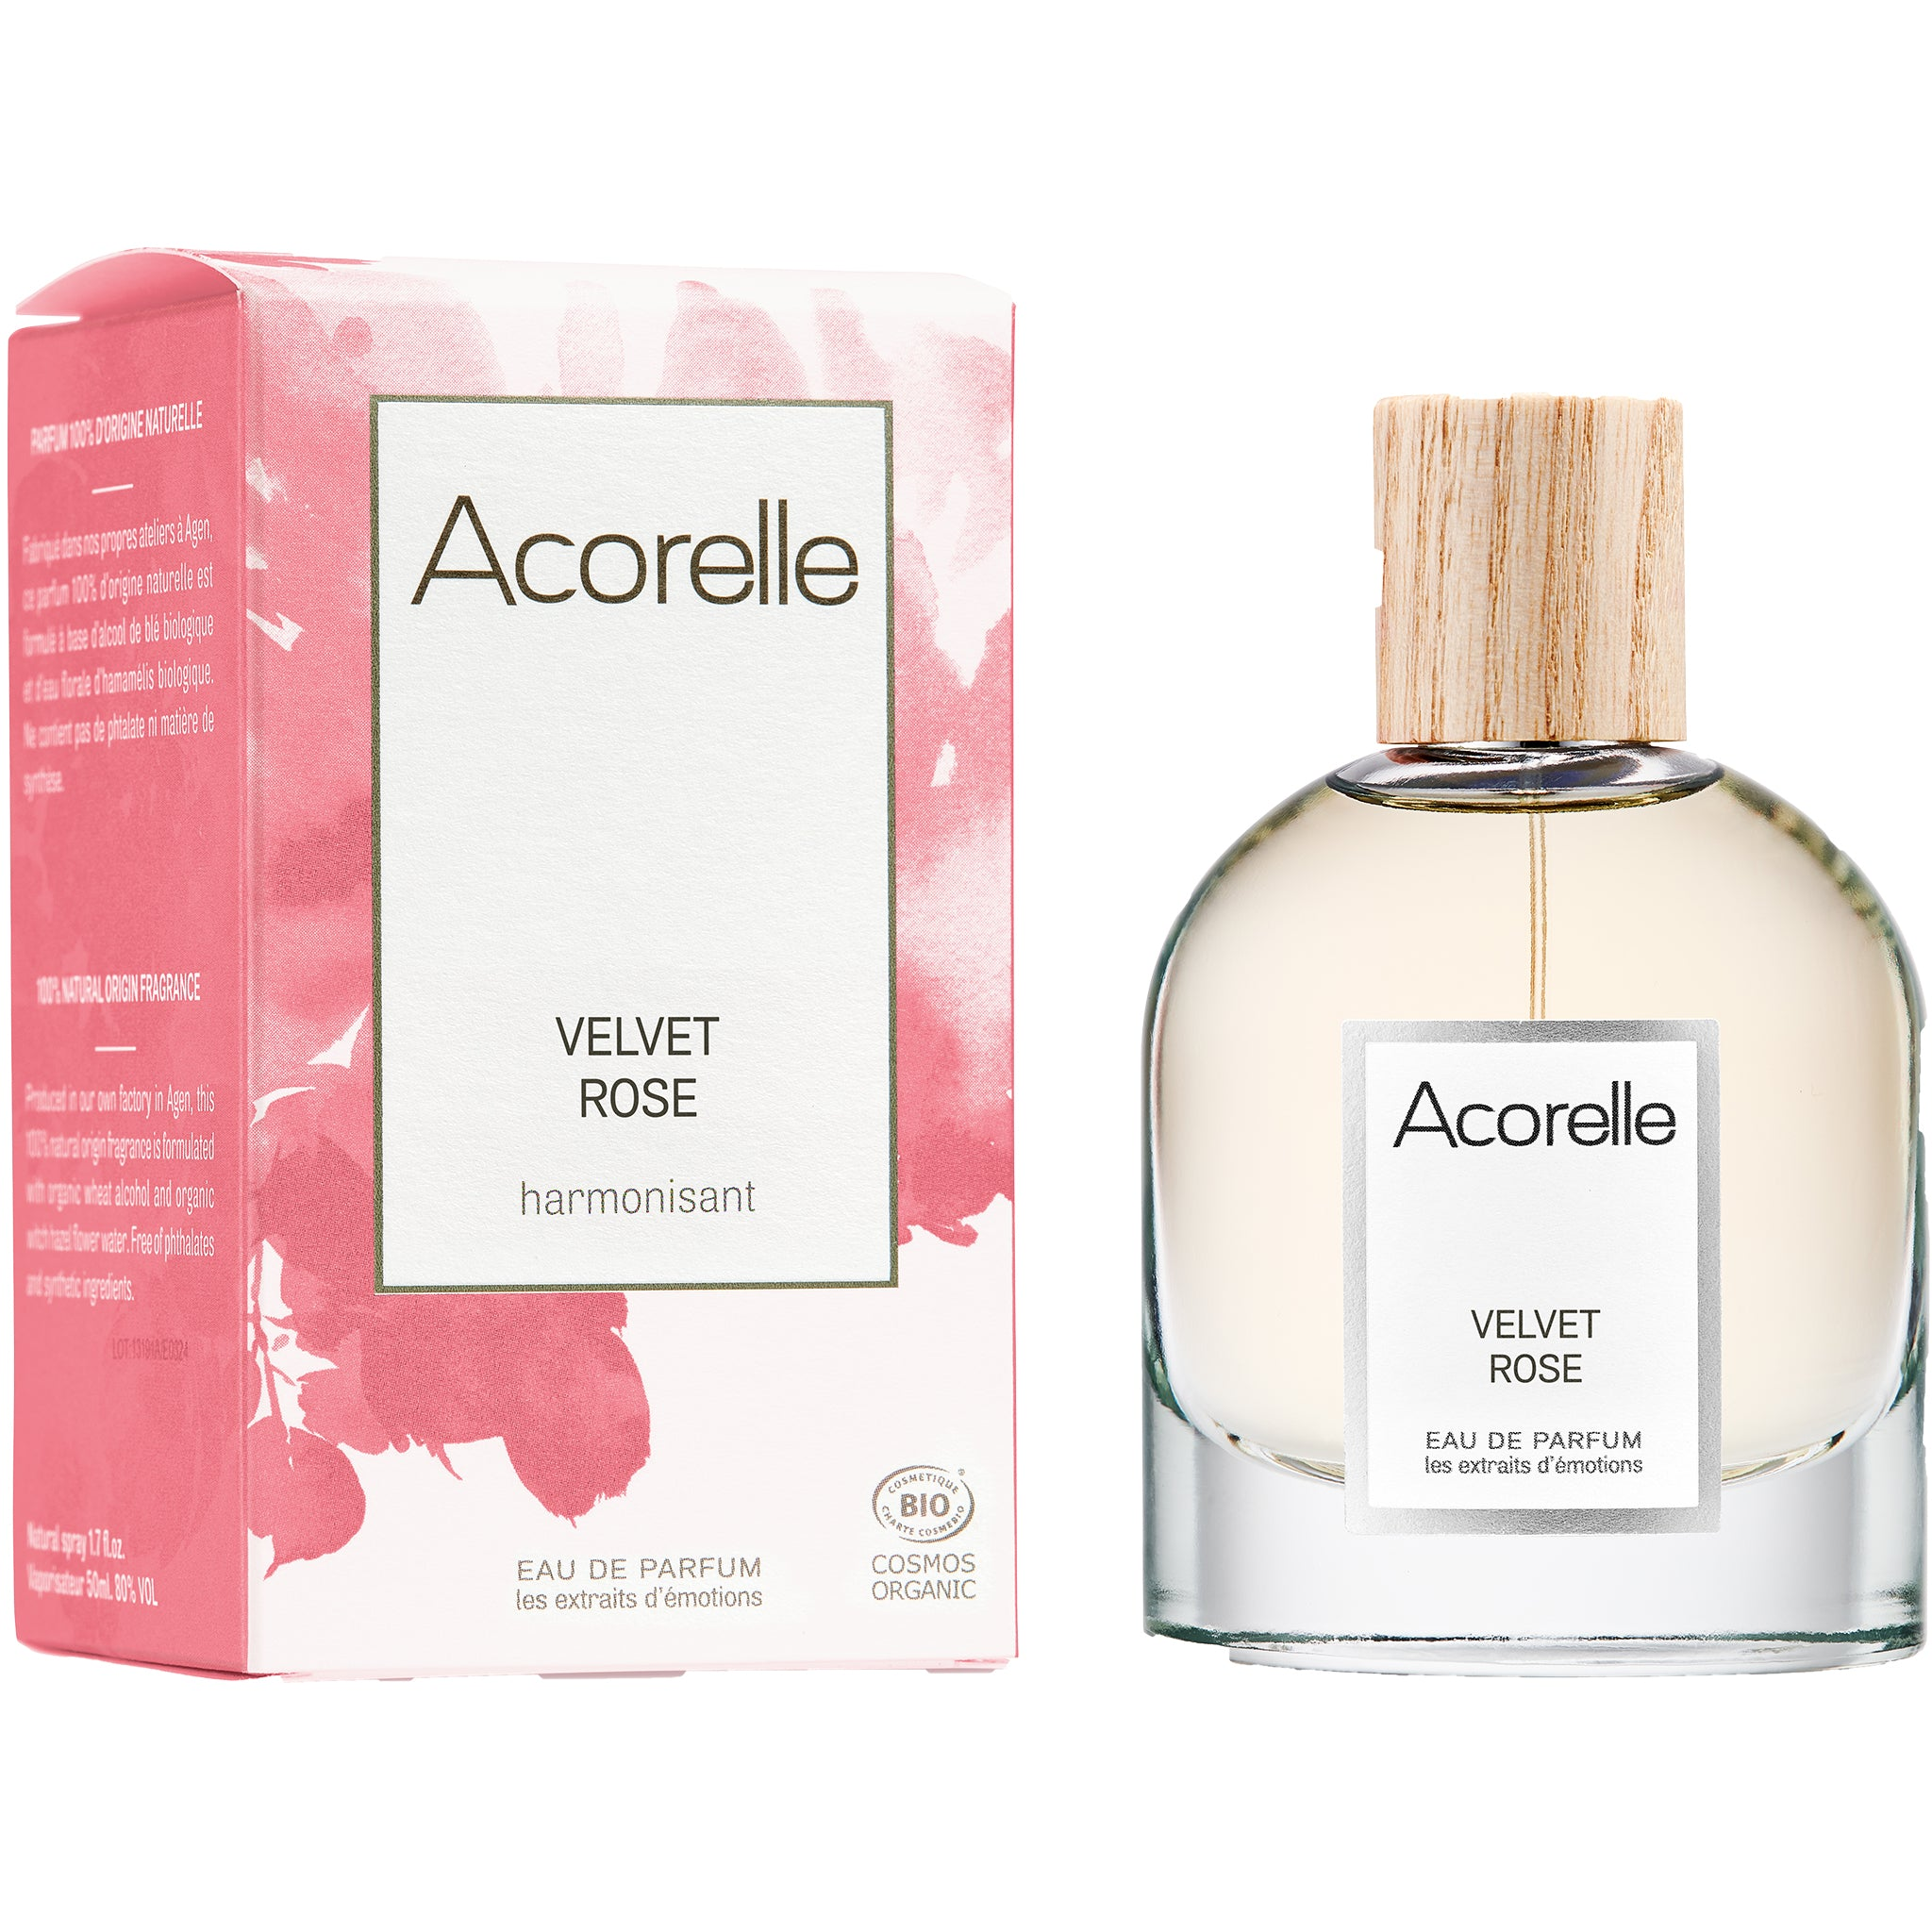 Eau de Parfum Velvet Rose - UK DELIVERY ONLY